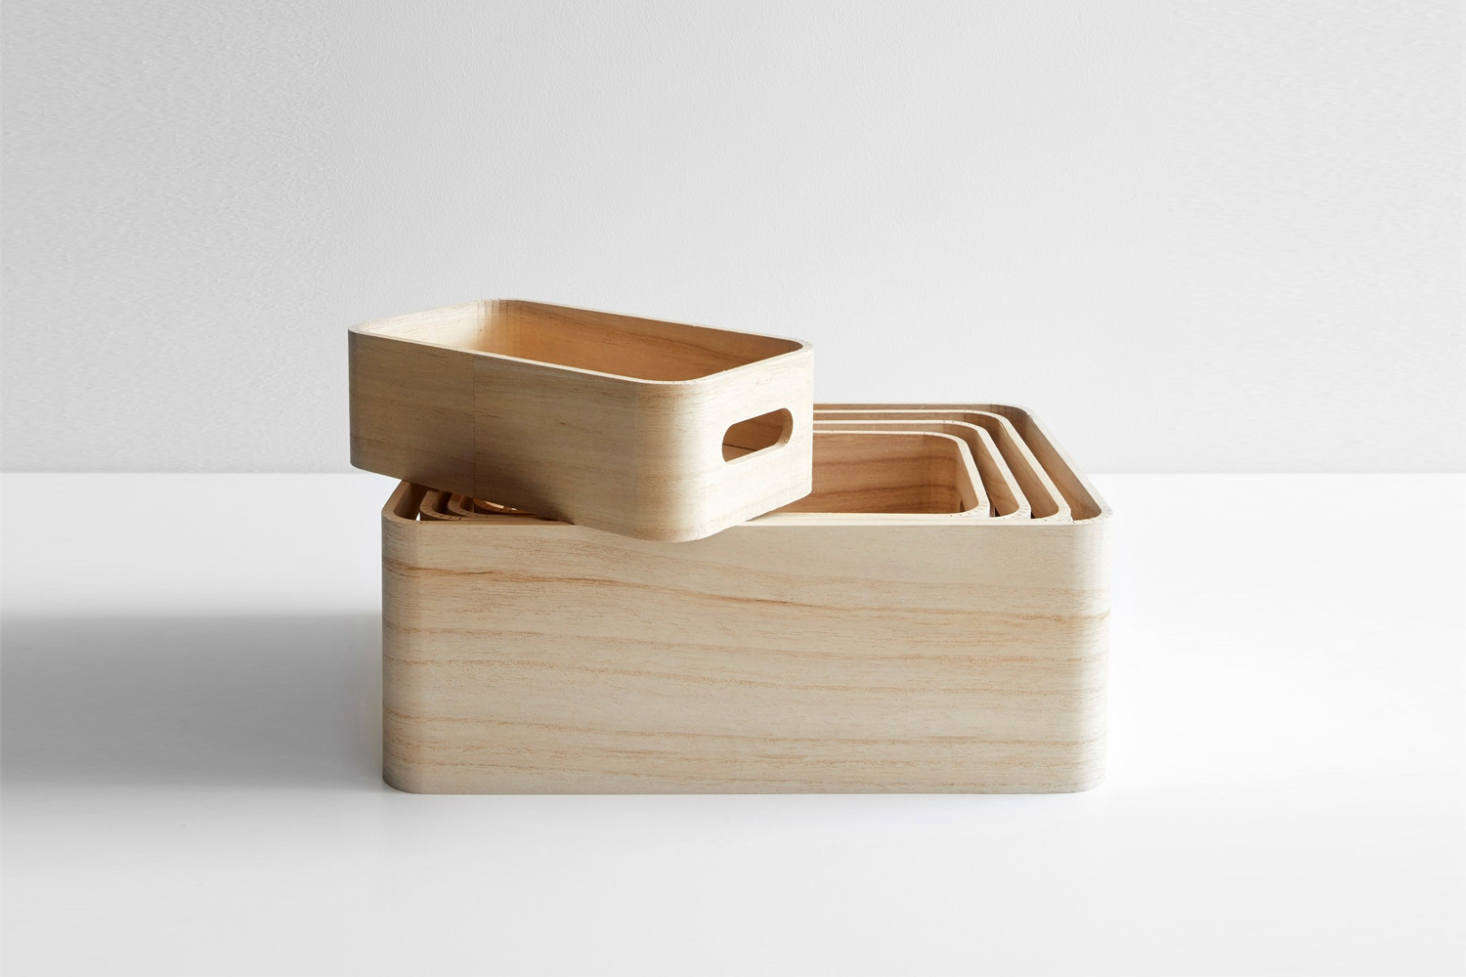 The Save-It Storage Box Set of 5 from Rig-Tig is made of unfinished Paulownia wood for $54.95 at Unison Home.